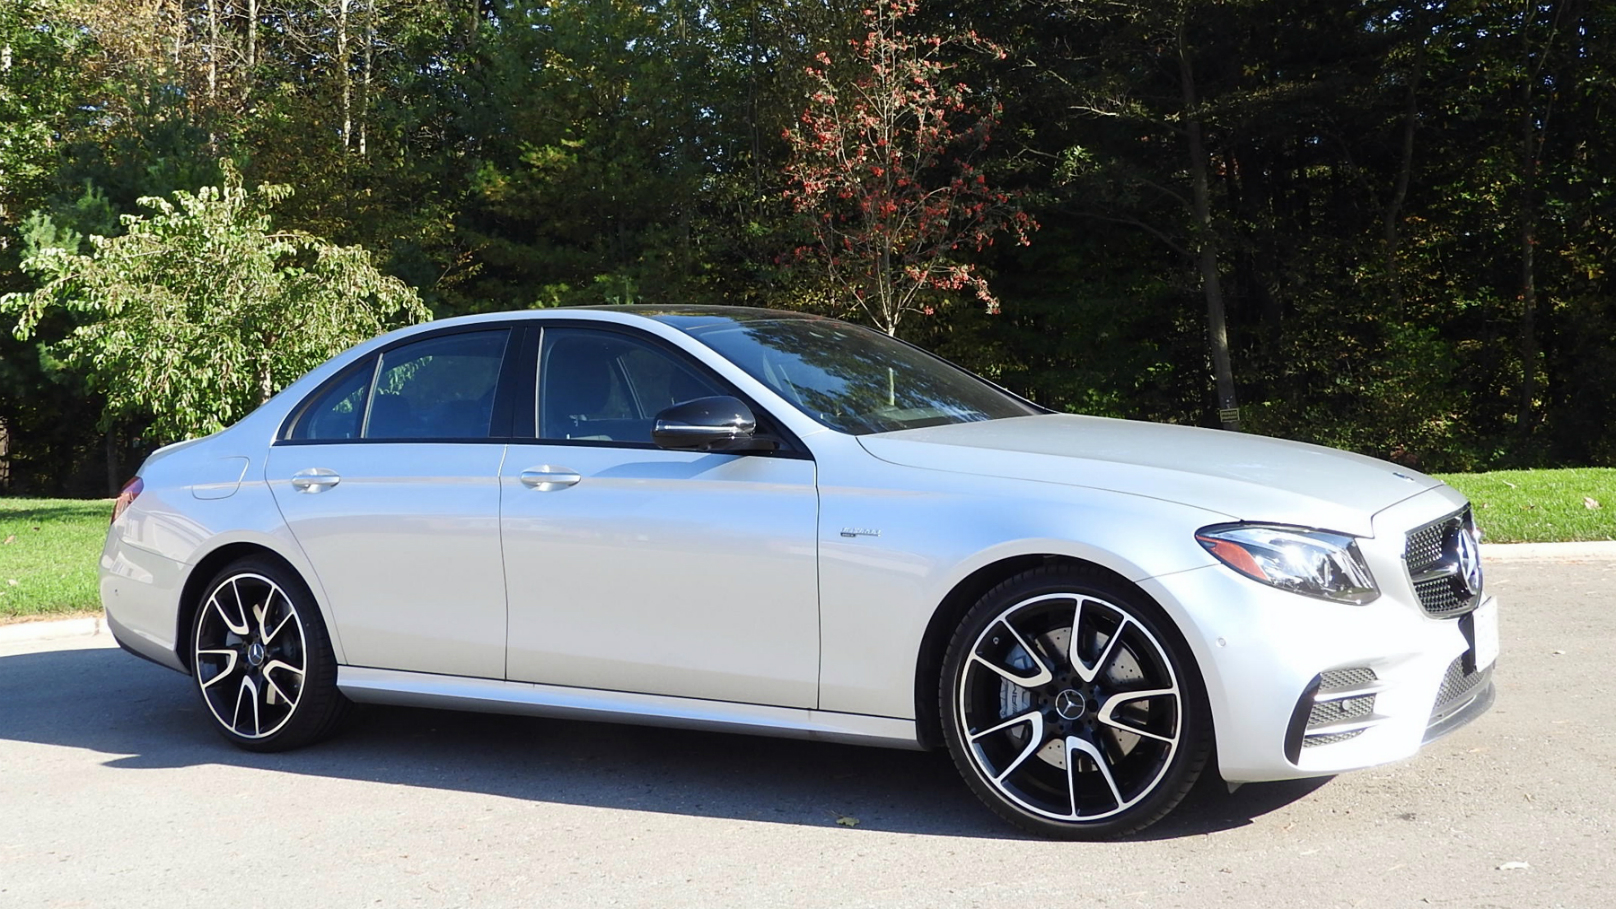 2017 Mercedes-Benz AMG E43 4MATIC Sedan